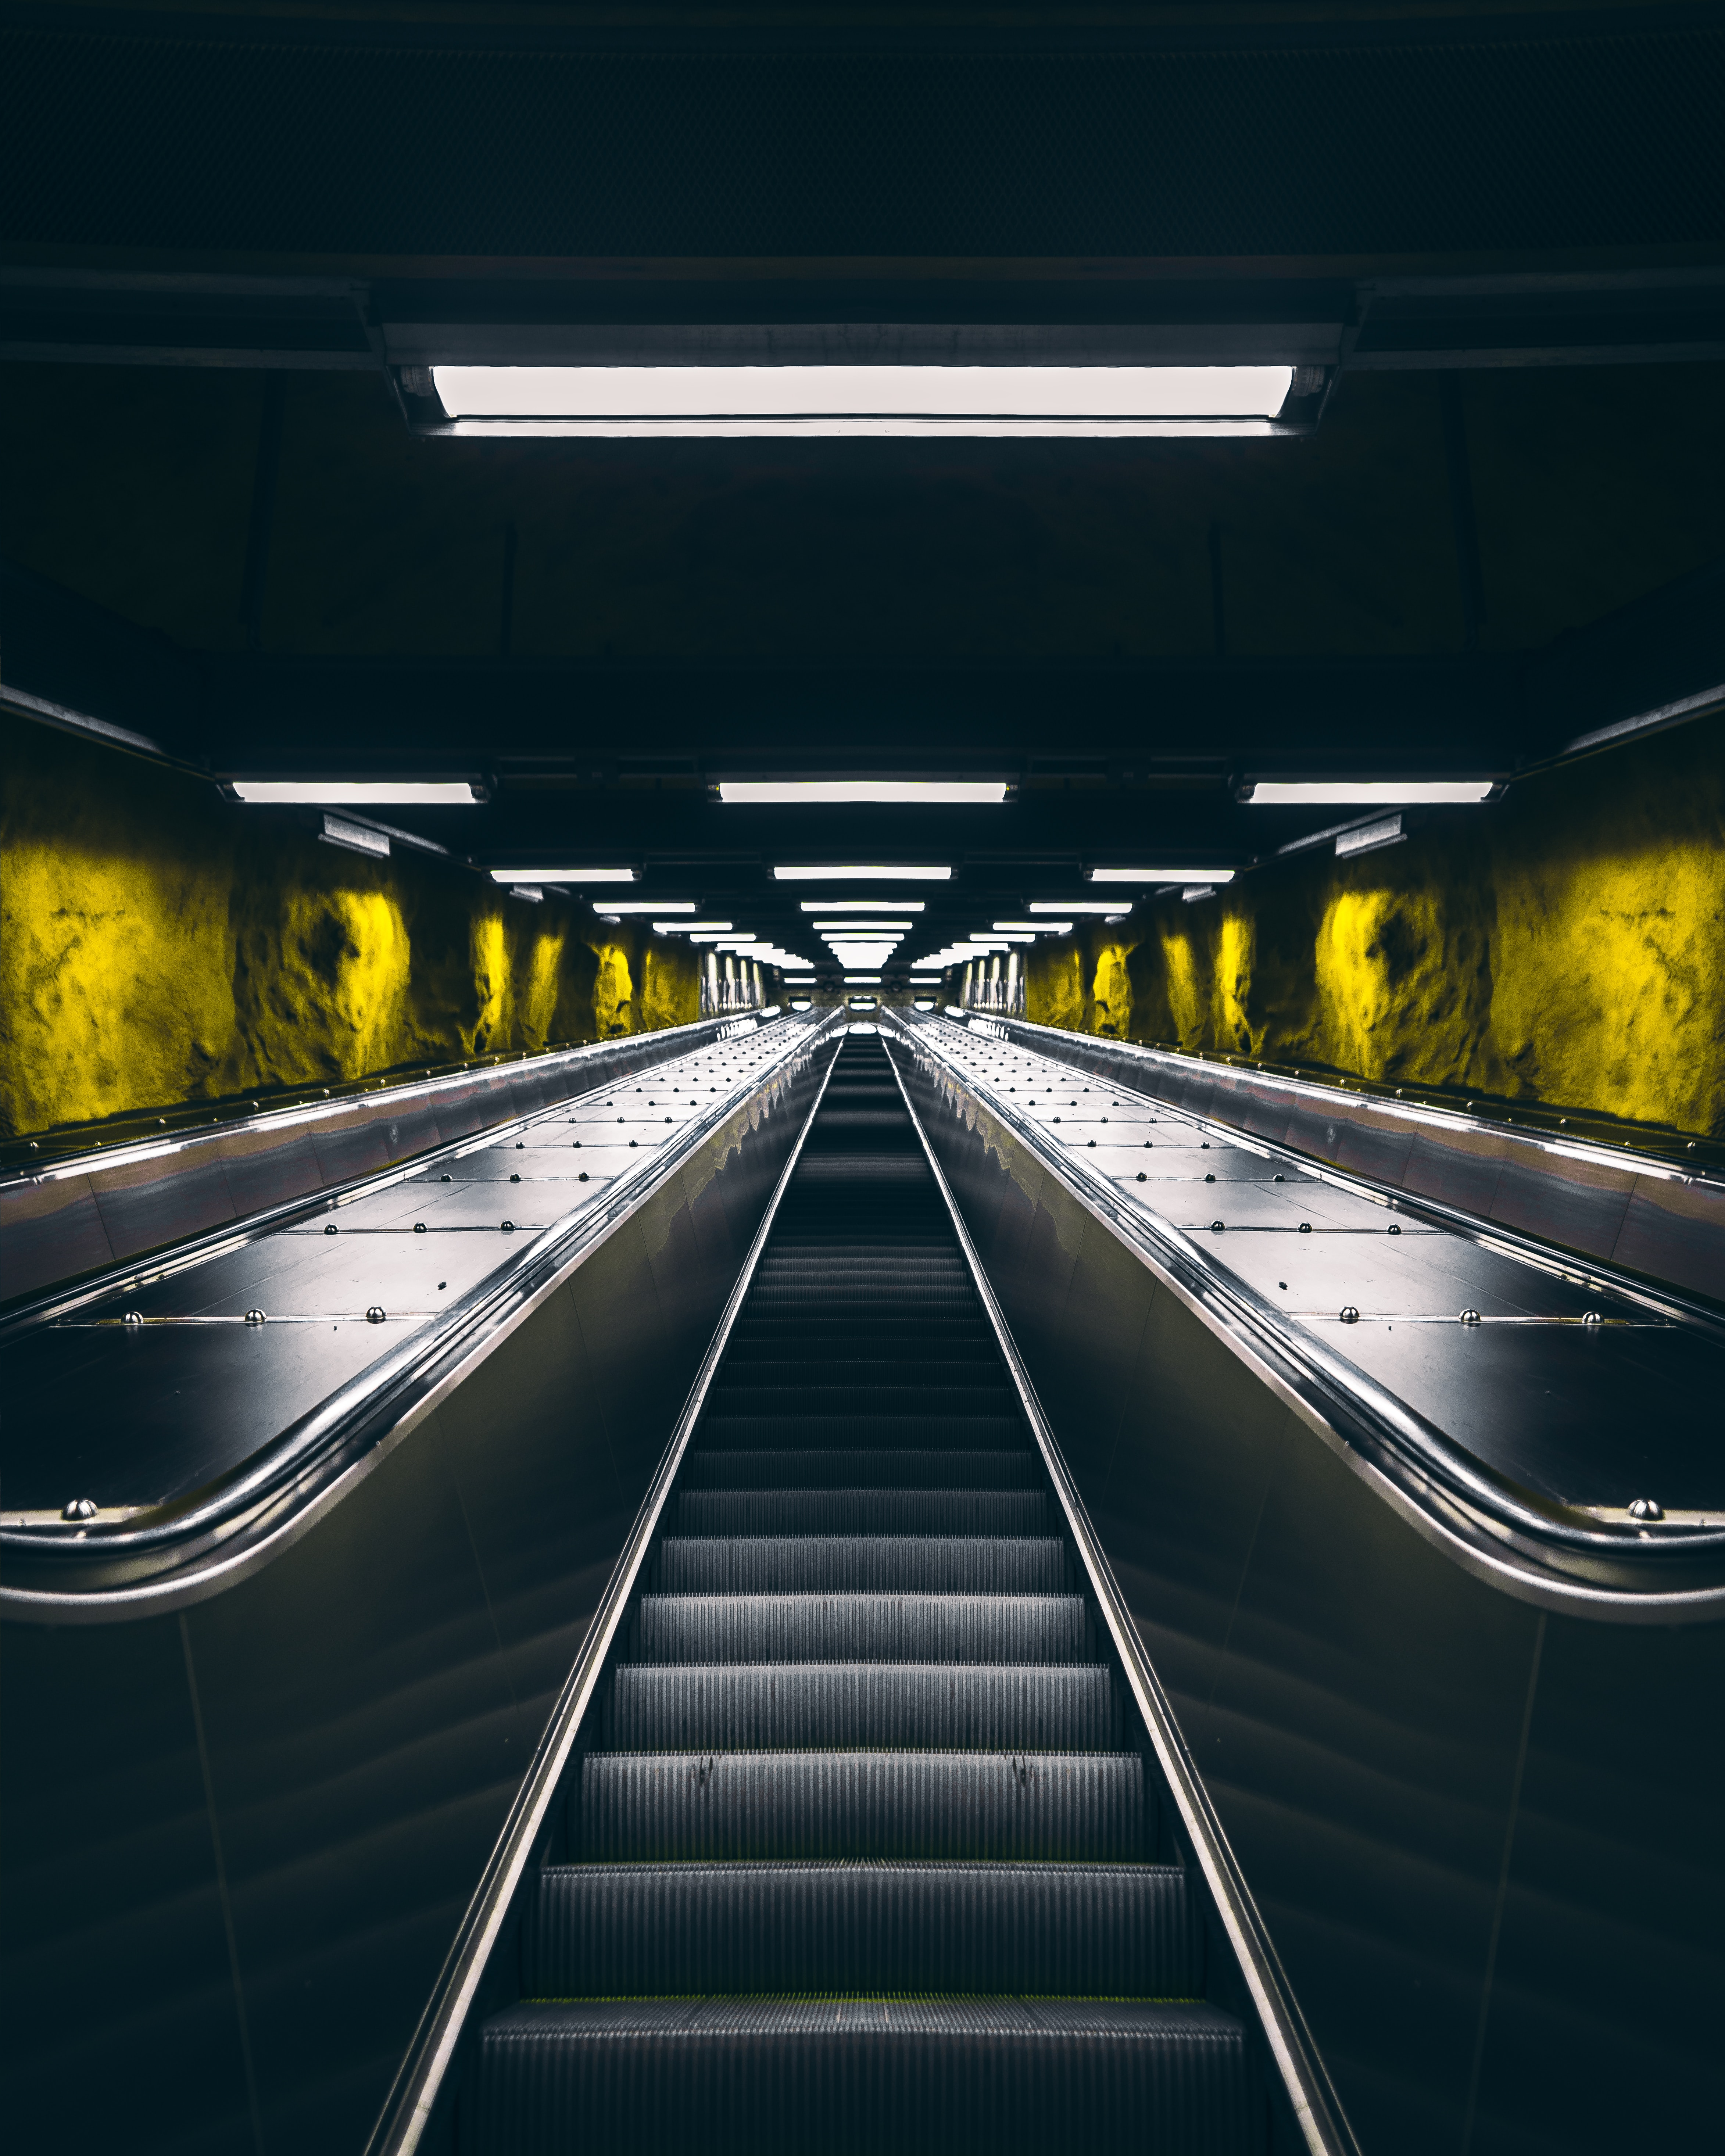 120146 Screensavers and Wallpapers Metro for phone. Download Miscellanea, Miscellaneous, Backlight, Illumination, Tunnel, Metro, Subway, Escalator pictures for free